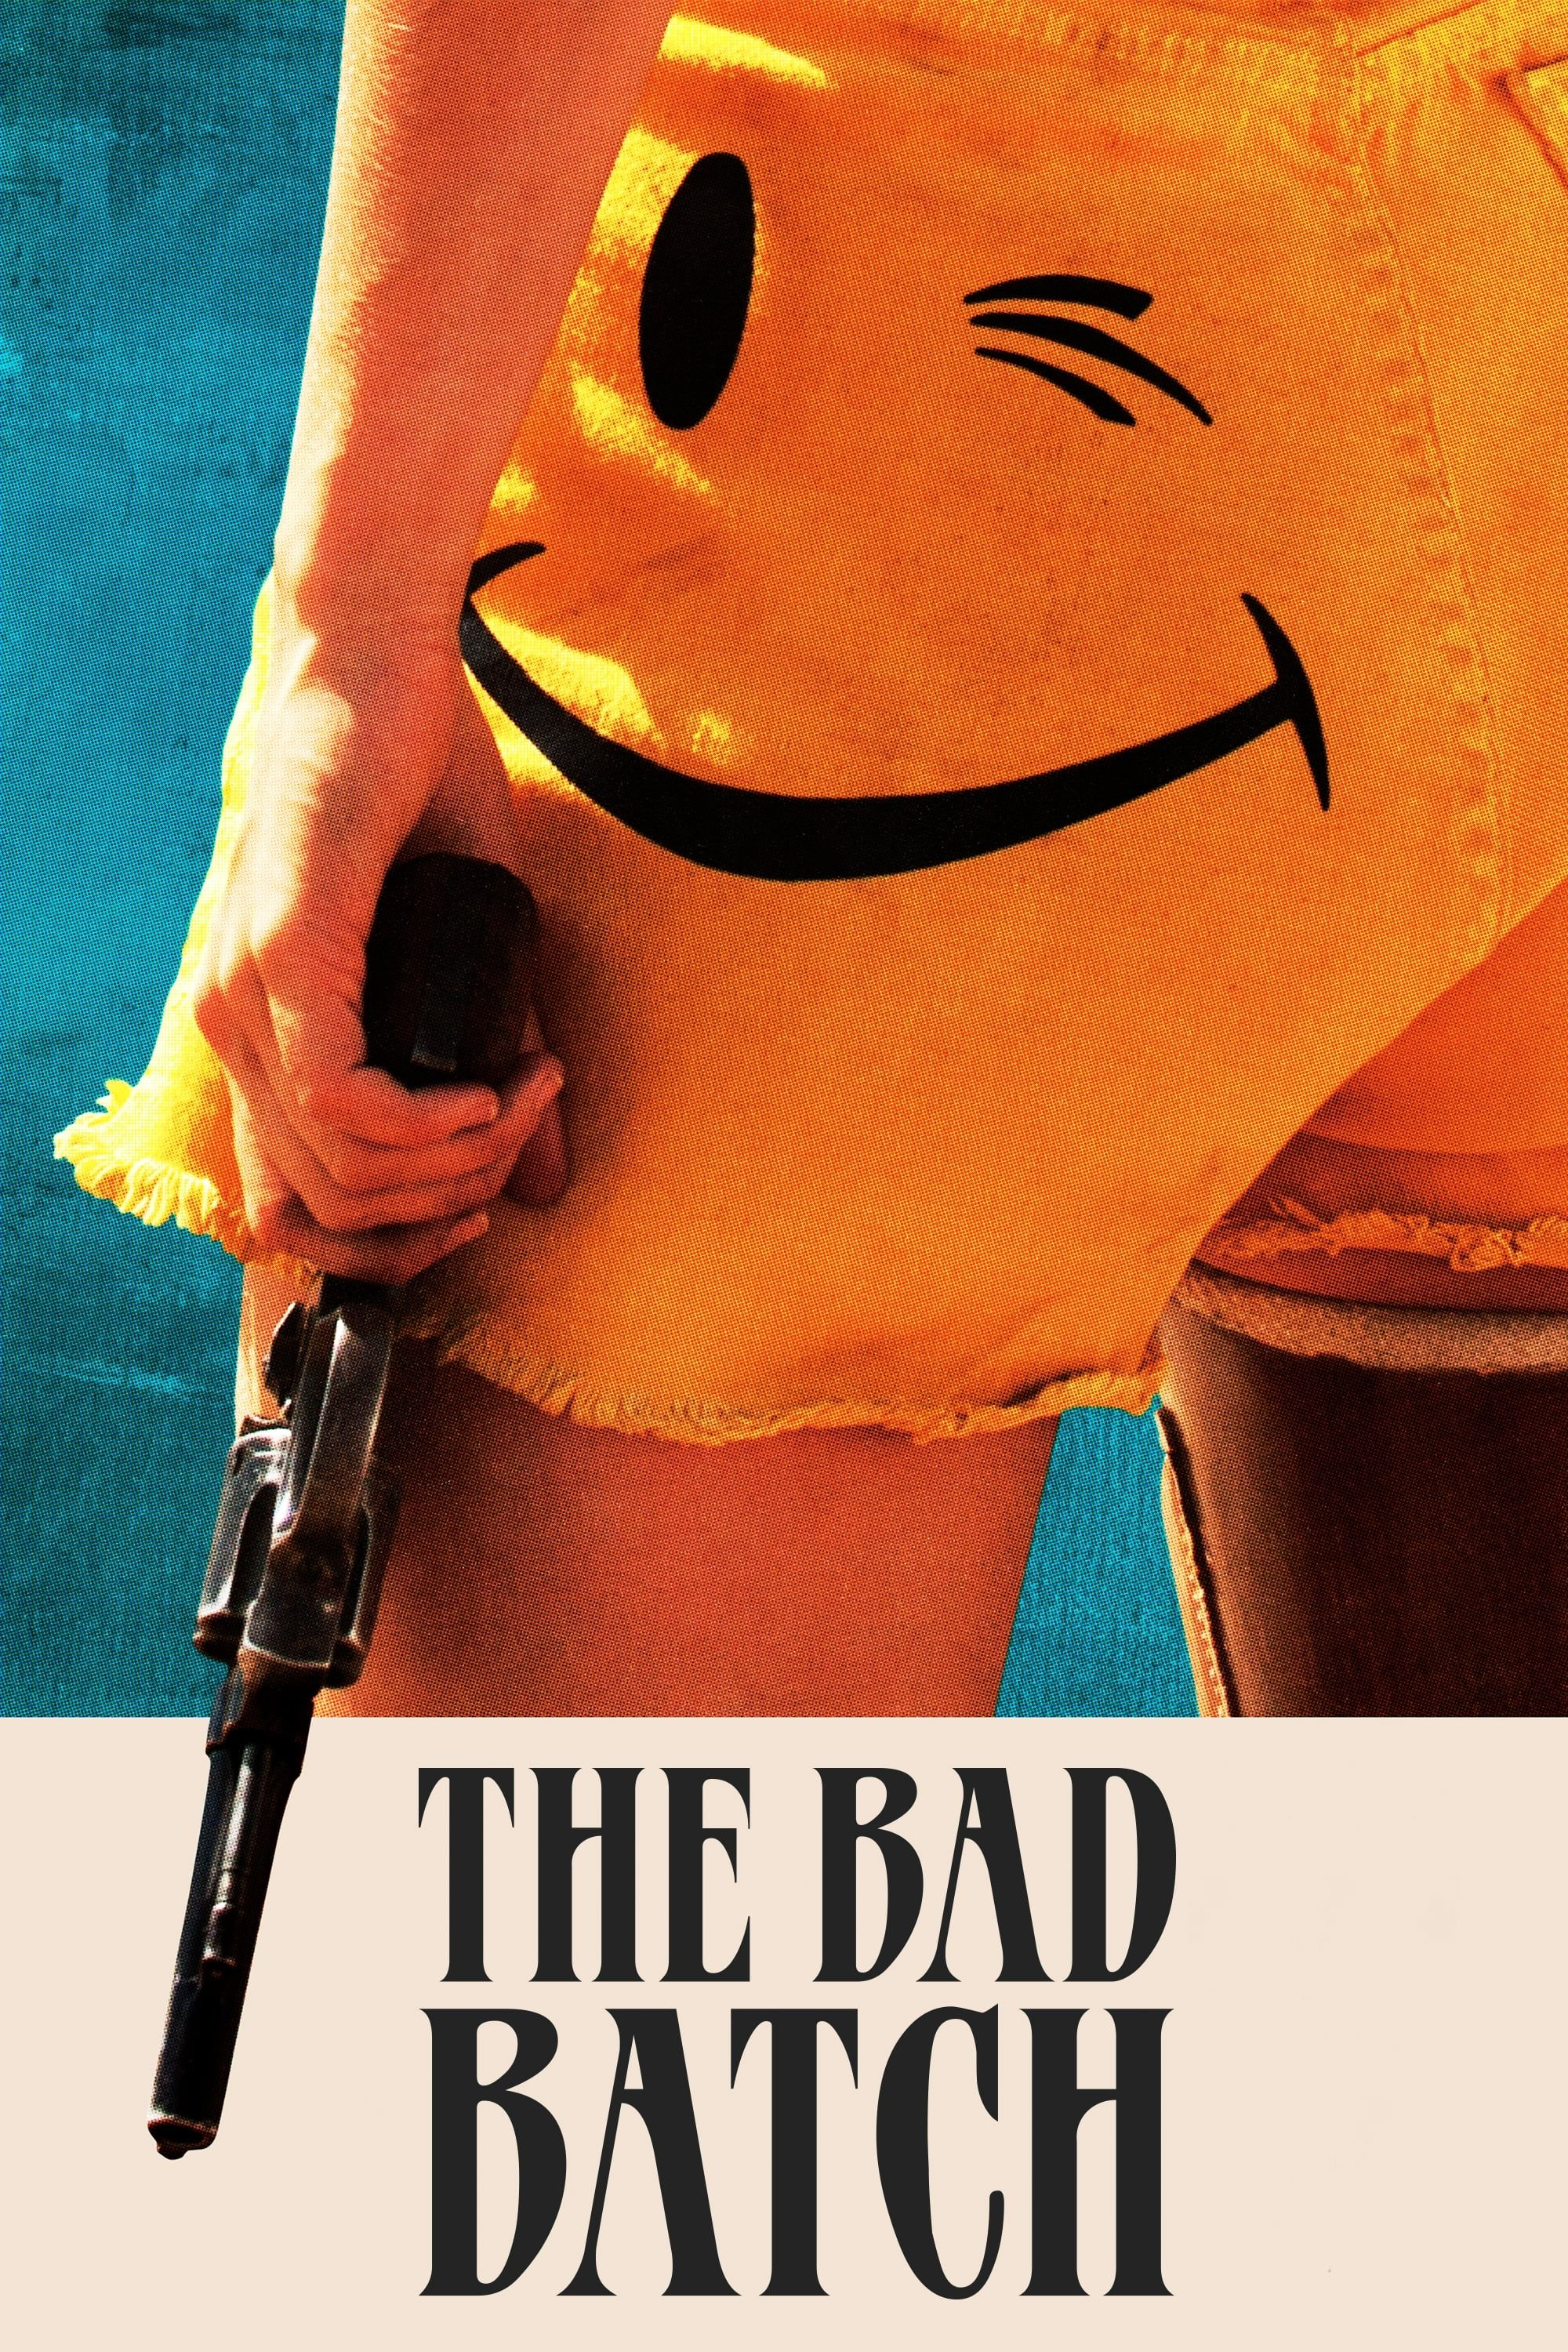 The Bad Batch  streaming